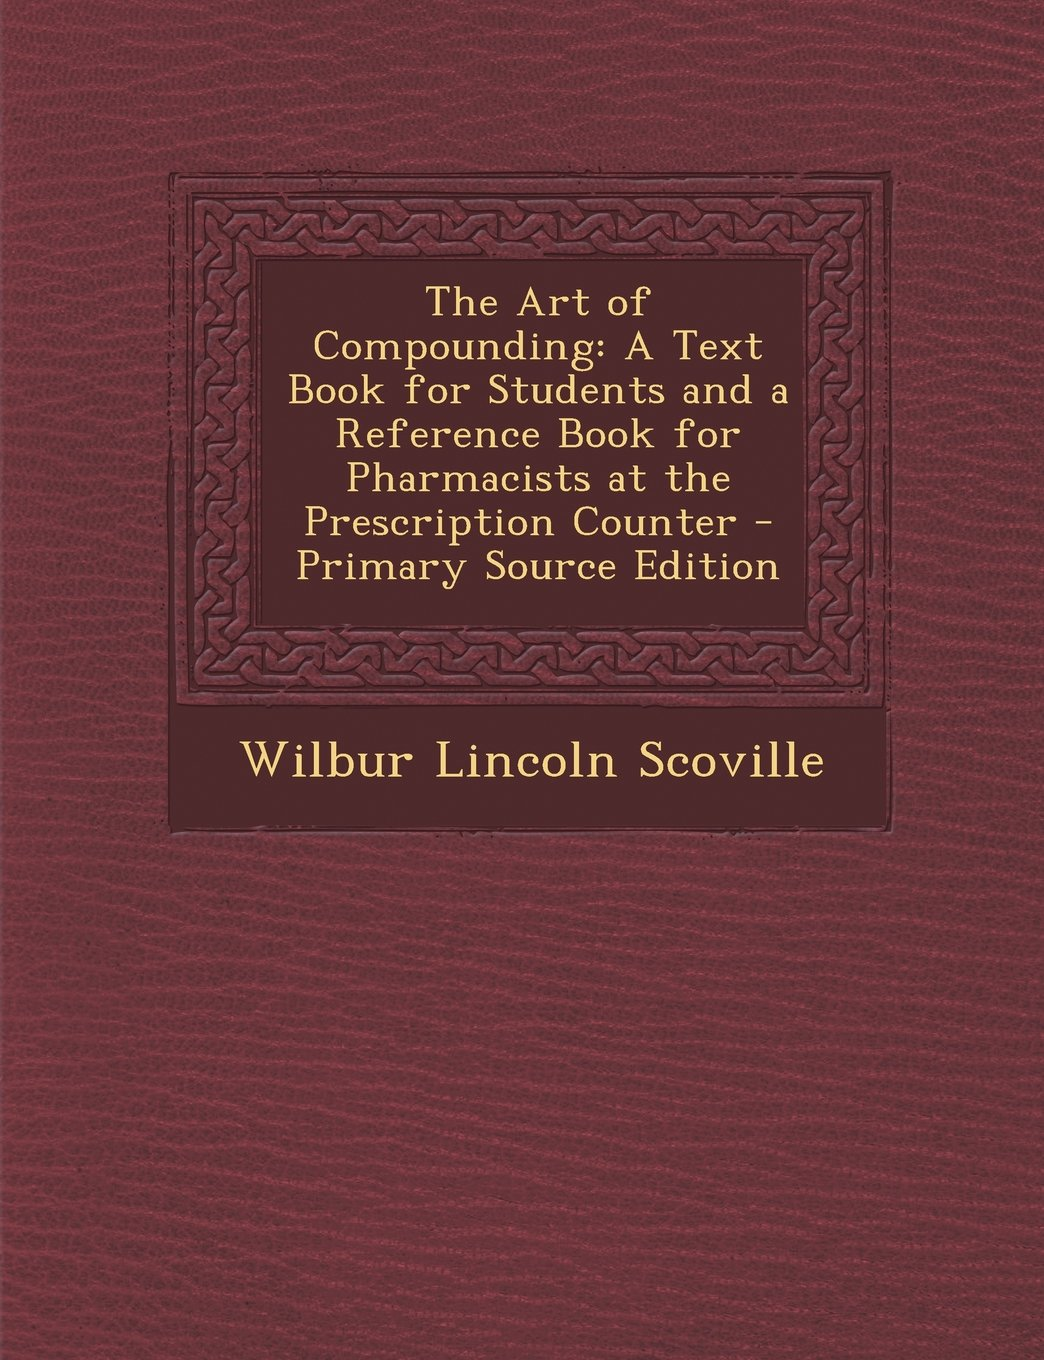 The Art of Compounding: A Text Book for Students and a Reference Book for Pharmacists at the Prescription Counter - Primary Source Edition ebook